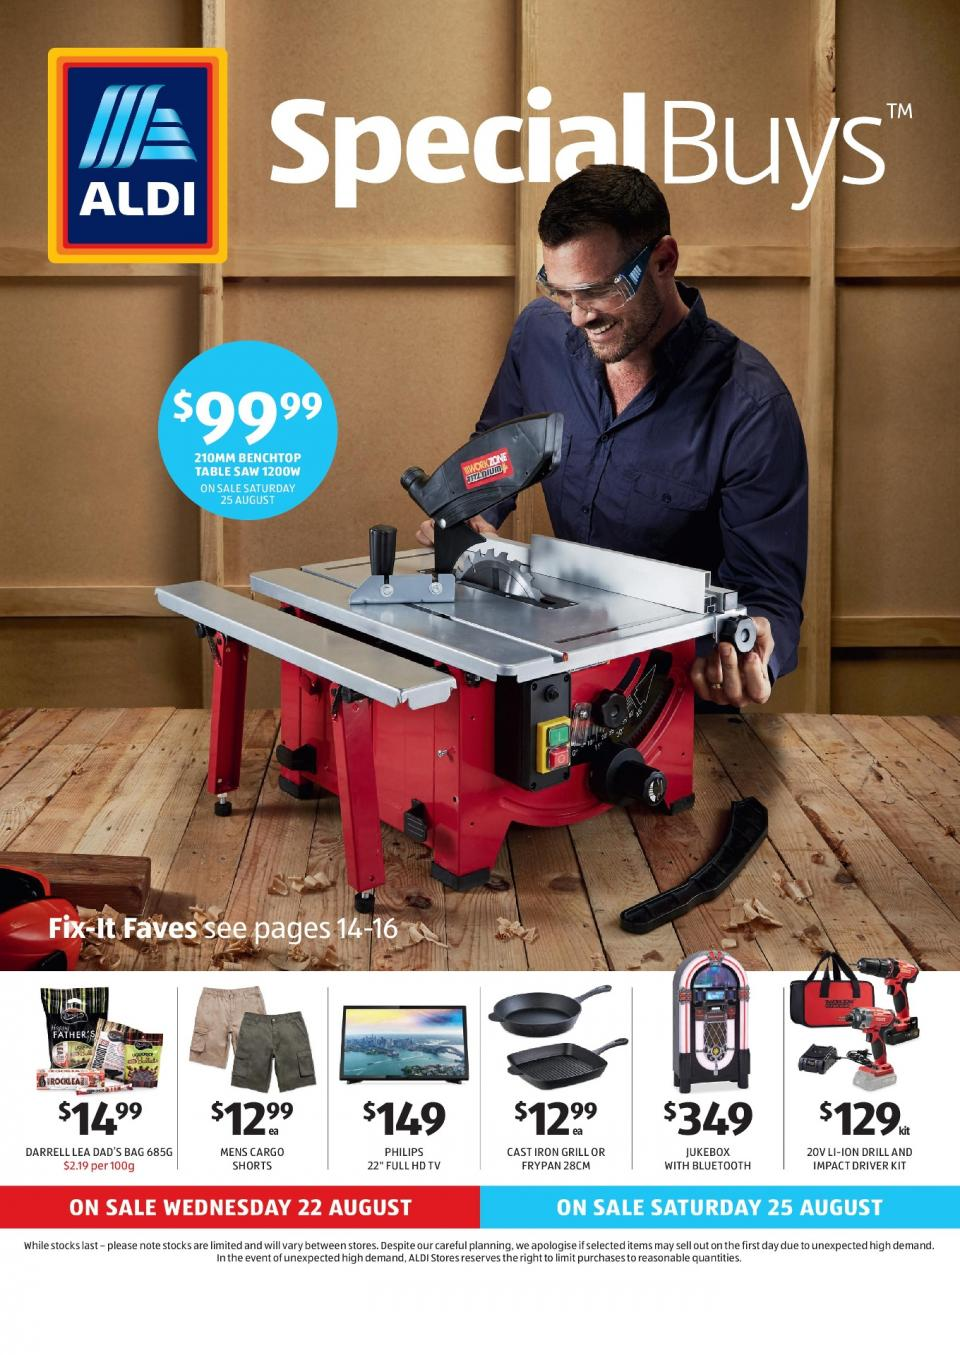 aldi special buys week 34 2018. Black Bedroom Furniture Sets. Home Design Ideas